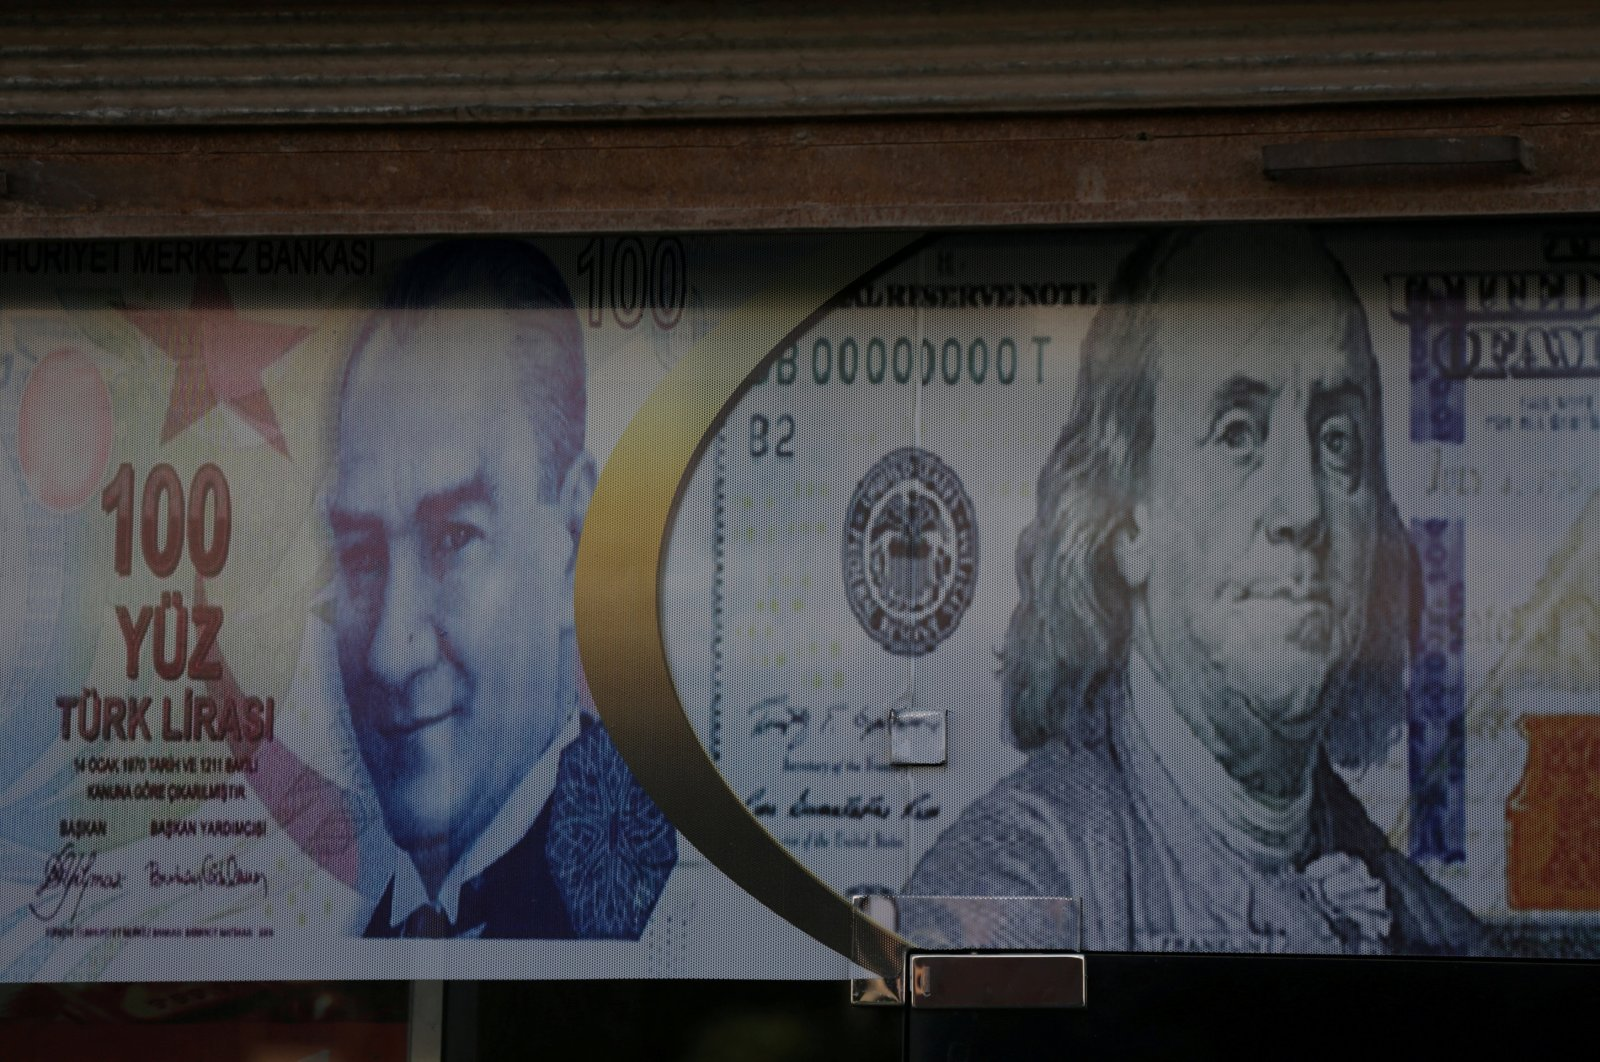 Posters of the U.S. dollar and Turkish lira are seen on a currency exchange shop in the city of Azaz, Syria, Aug. 18, 2018. (Reuters Photo)